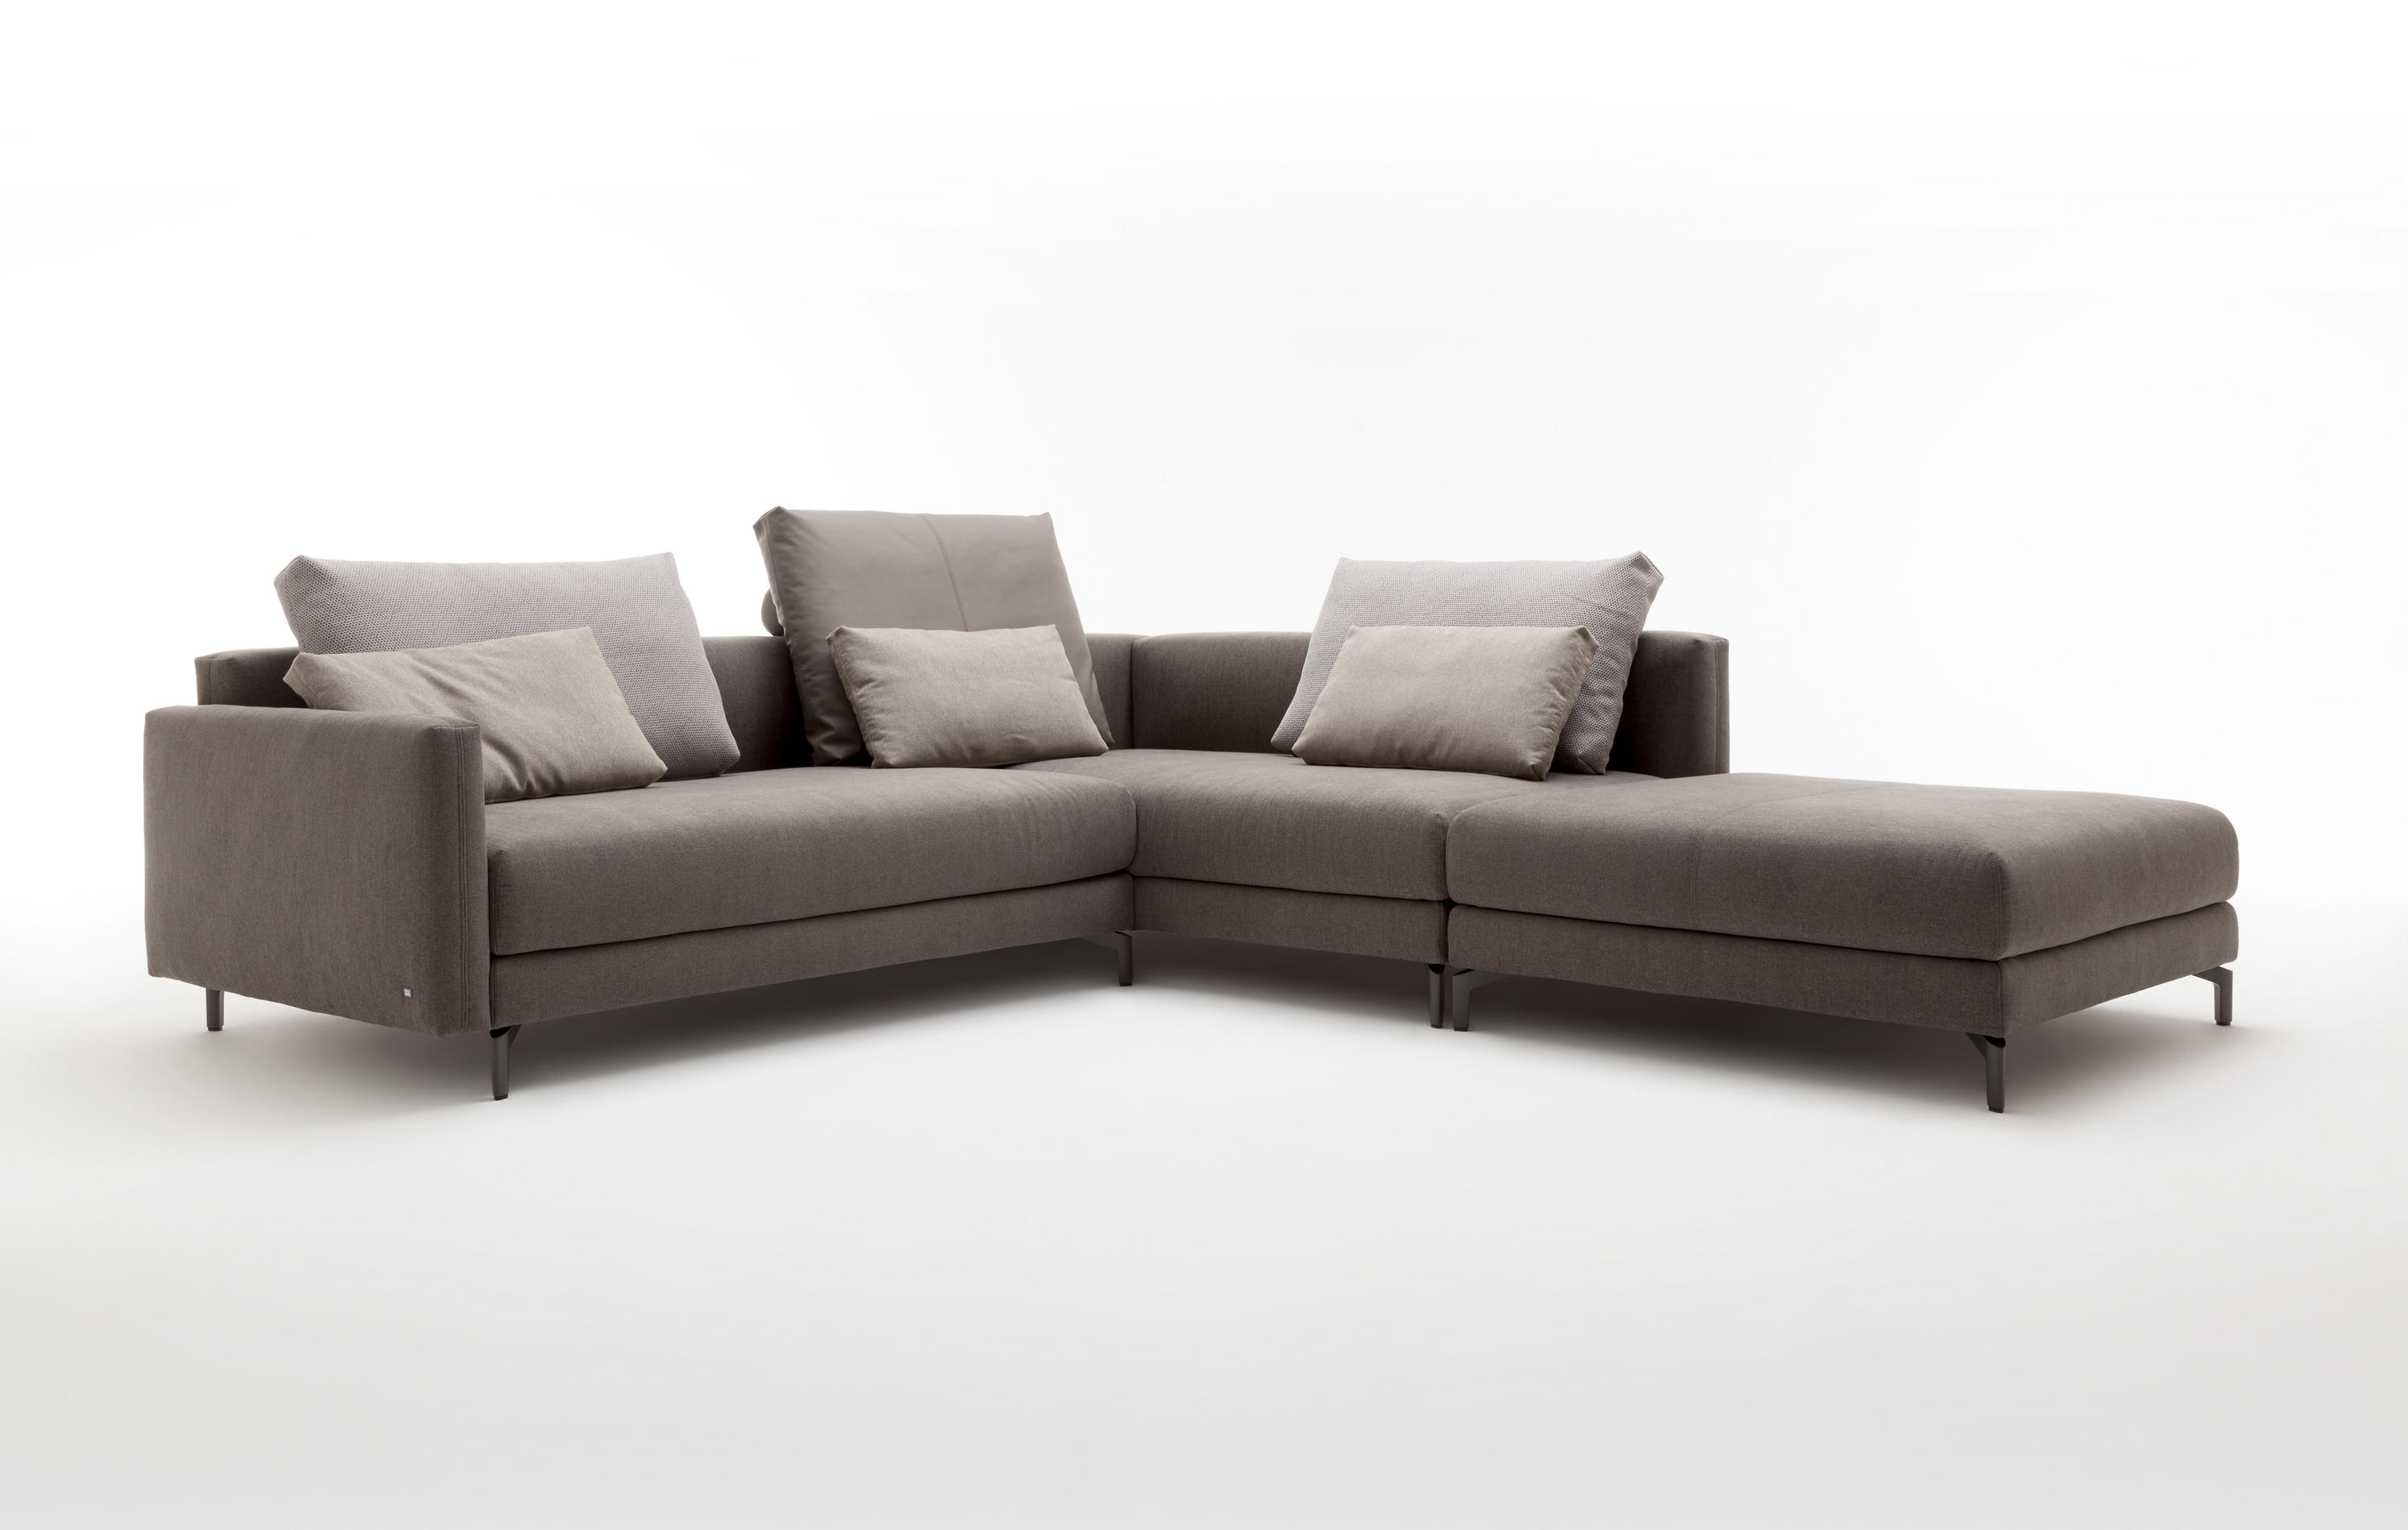 Bettsofa Rolf Benz Rolf Benz Nuvola Sofas From Rolf Benz Architonic